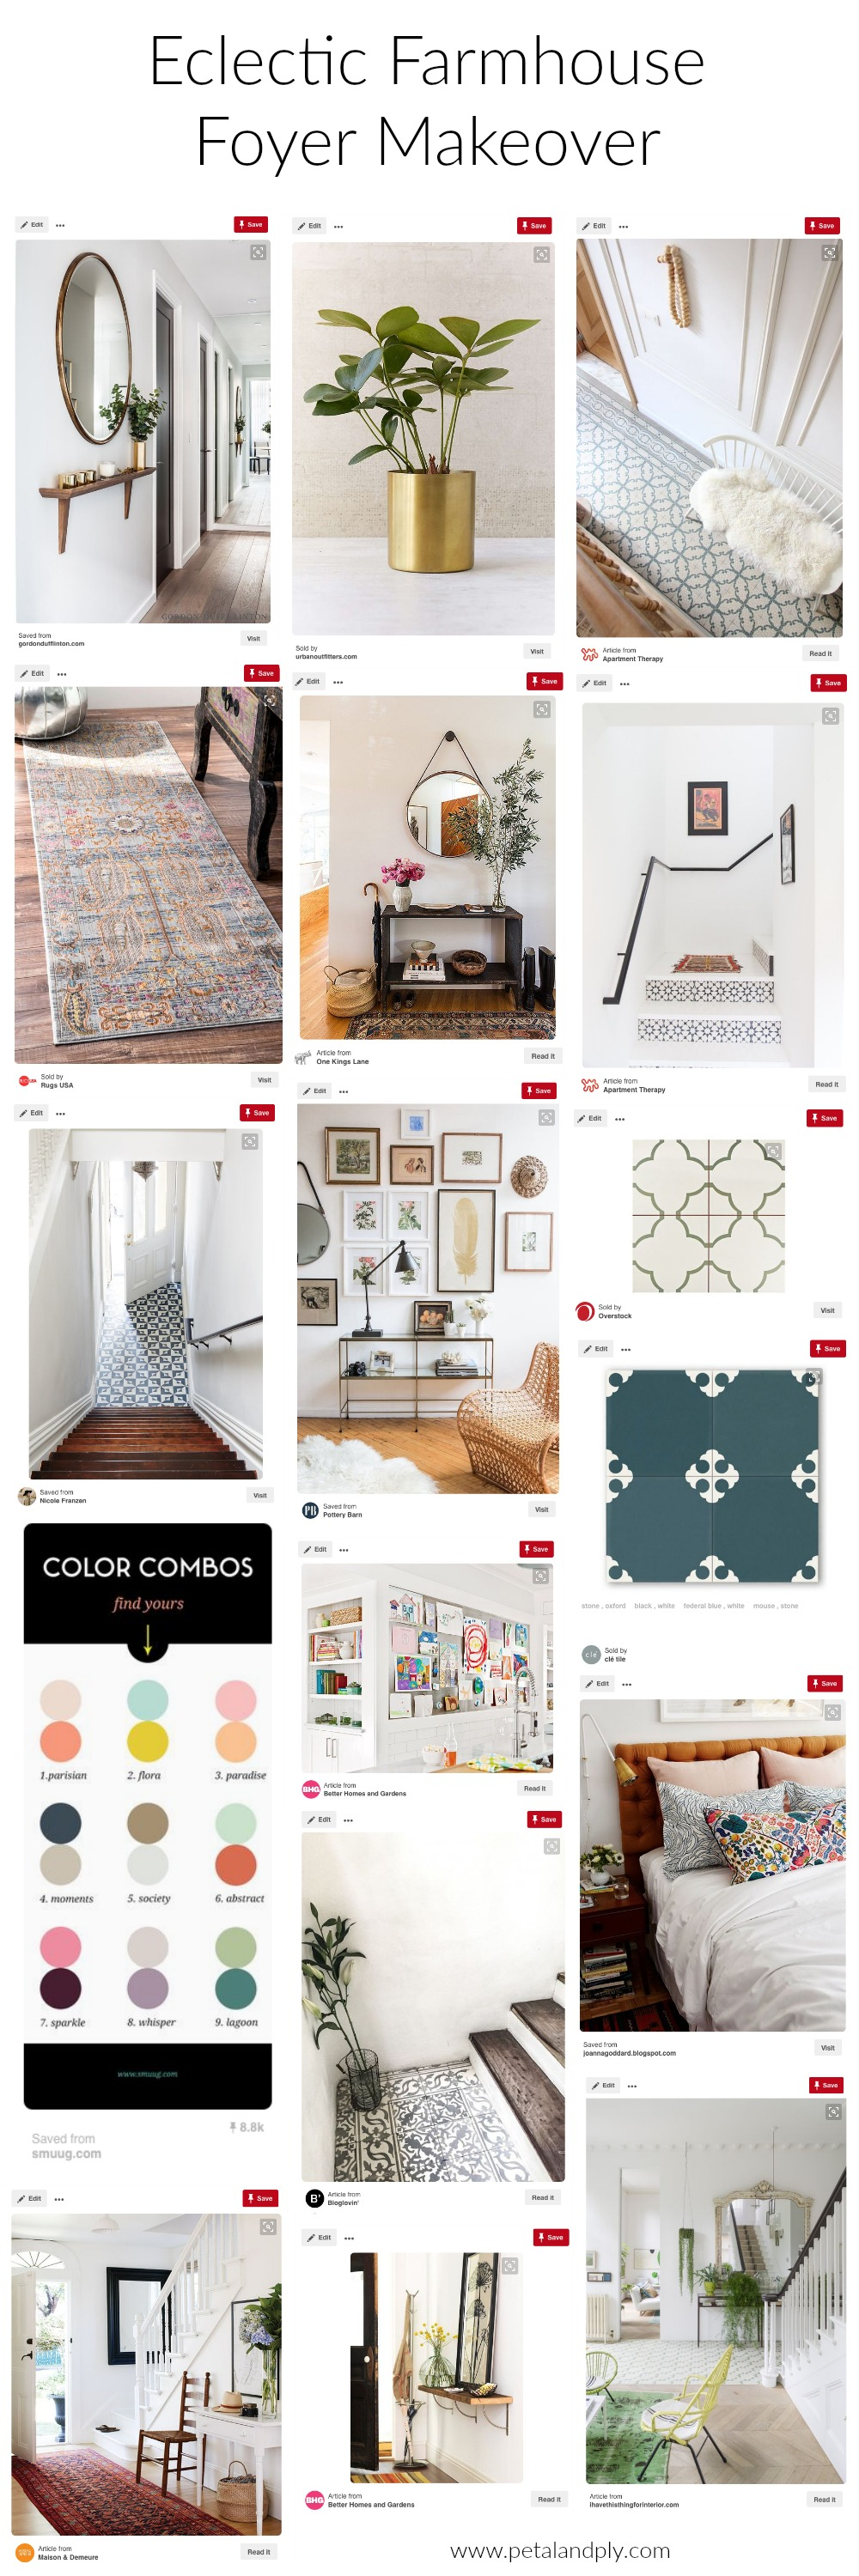 eclectic-farmhouse-foyer-makeover-moodboard-inspiration